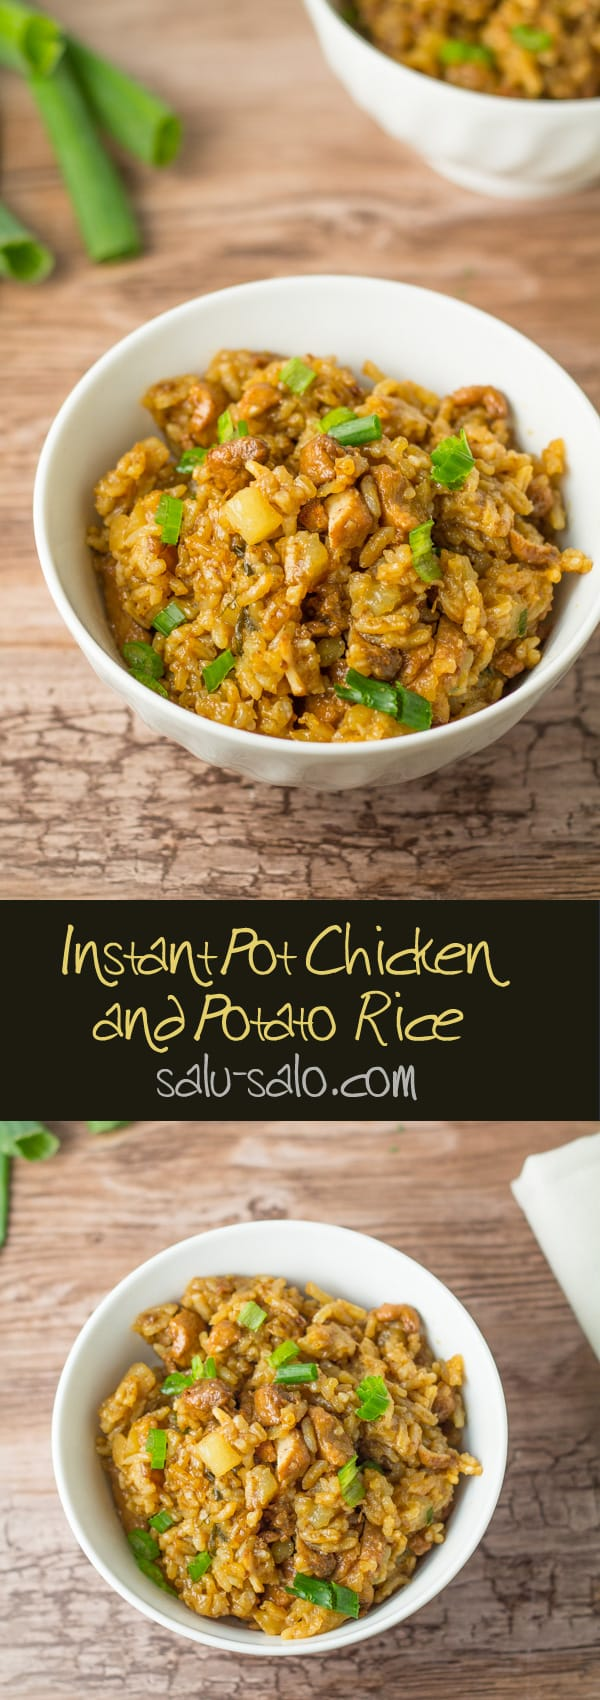 Instant Pot Chicken and Potato Rice